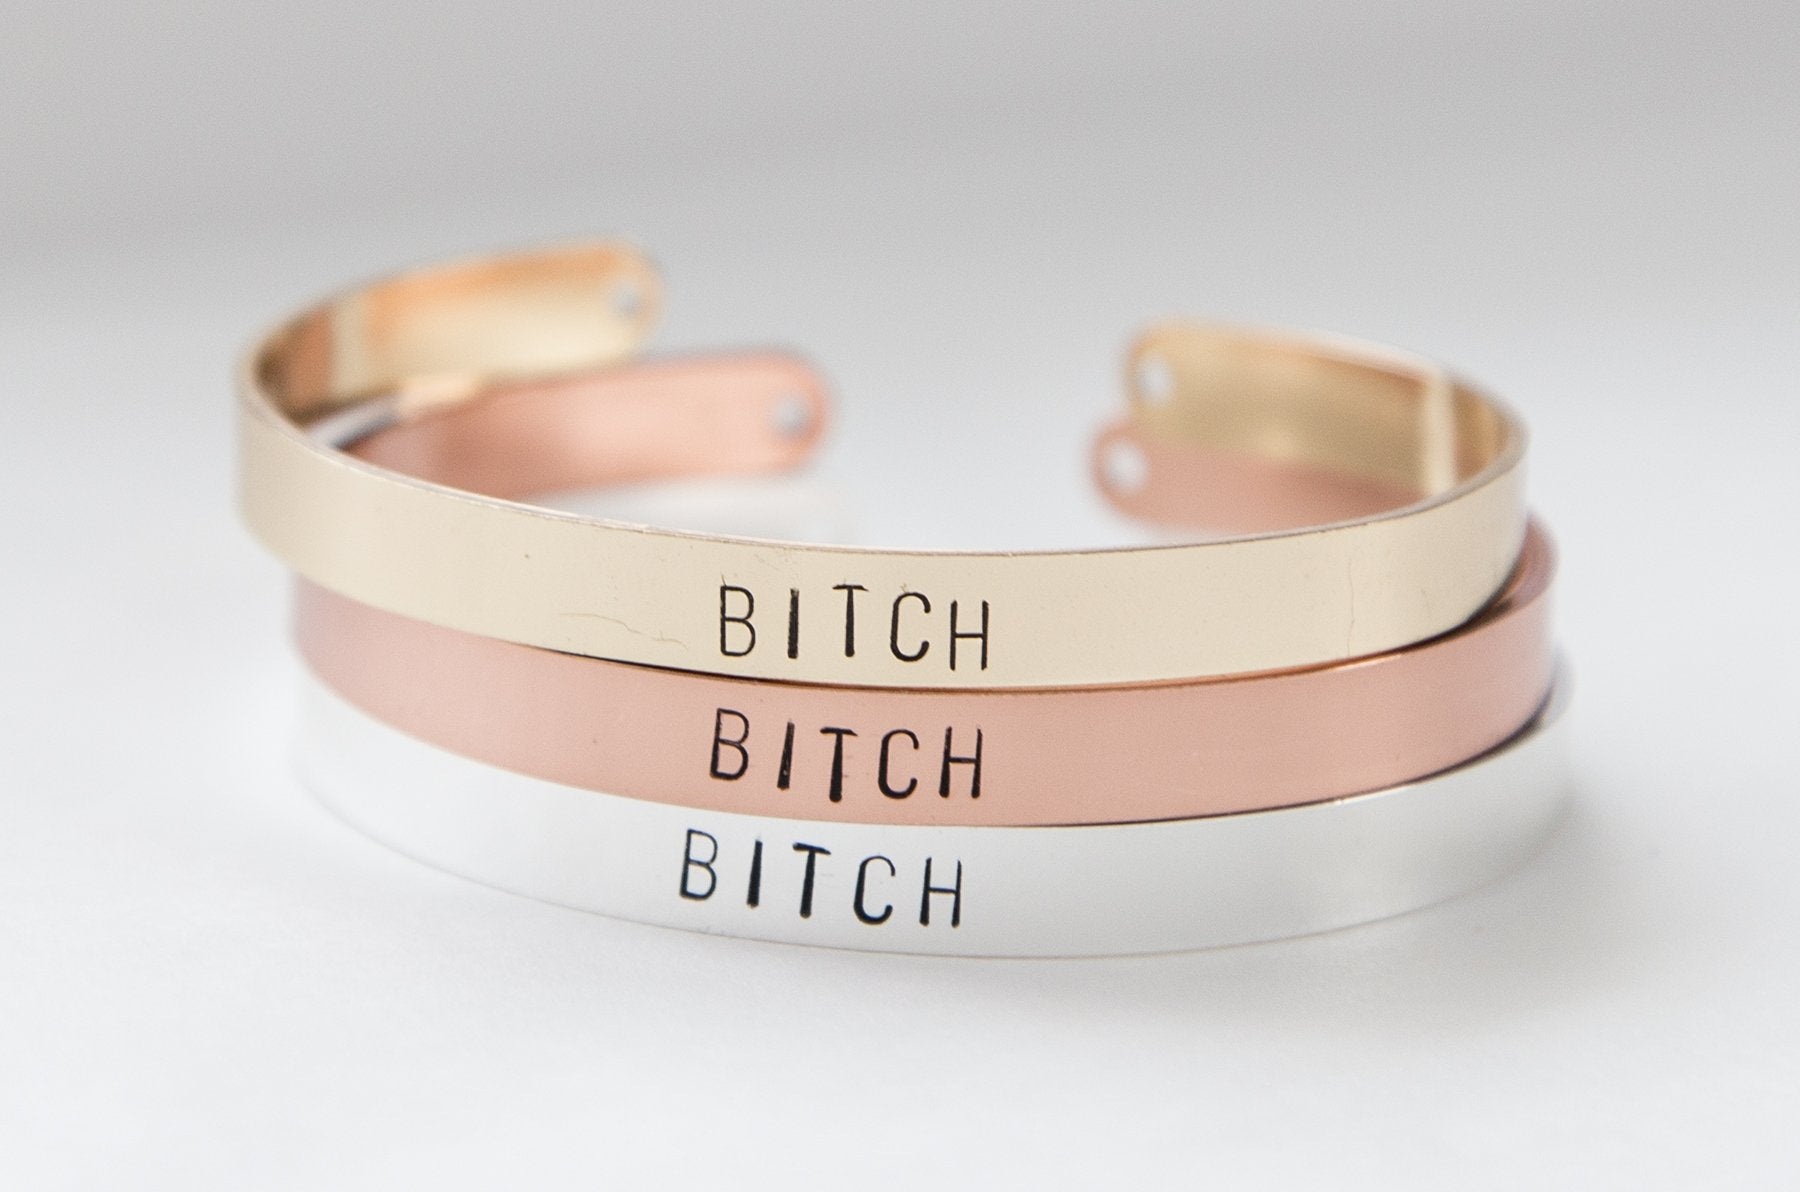 Bitch bracelet, hand stamped gold plated cuff,